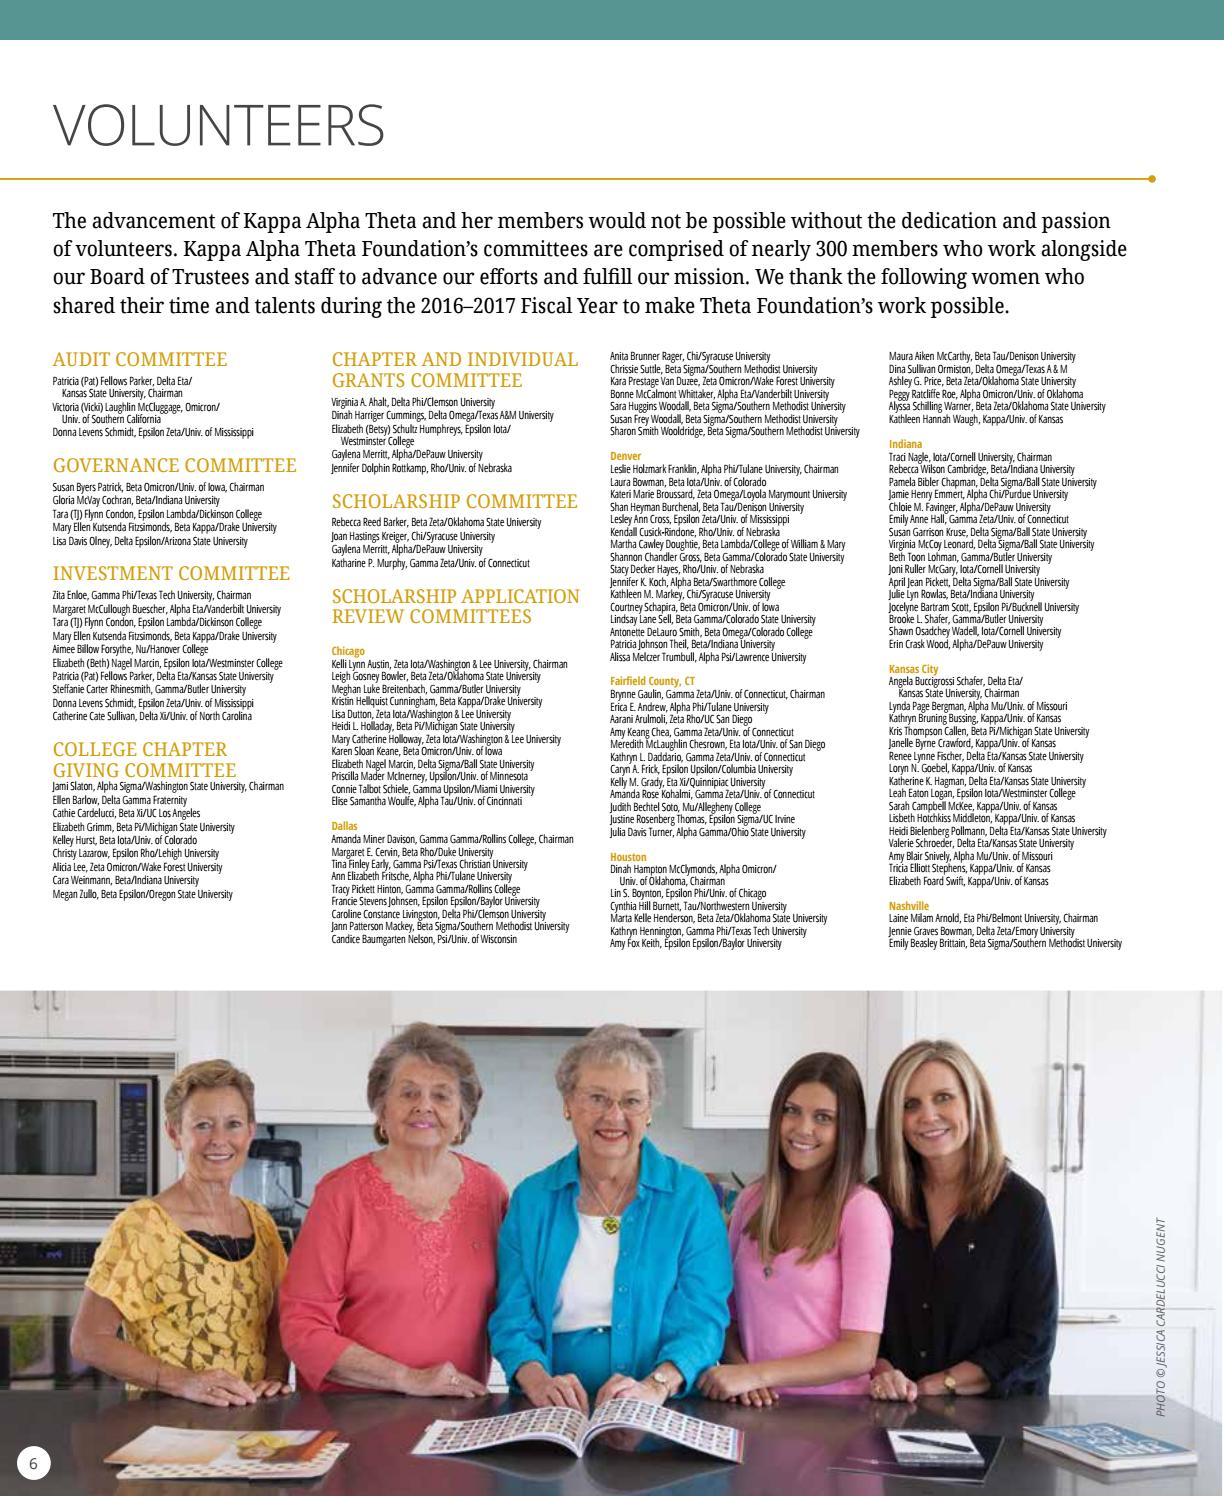 2016-17 Annual Report by Kappa Alpha Theta Foundation - issuu